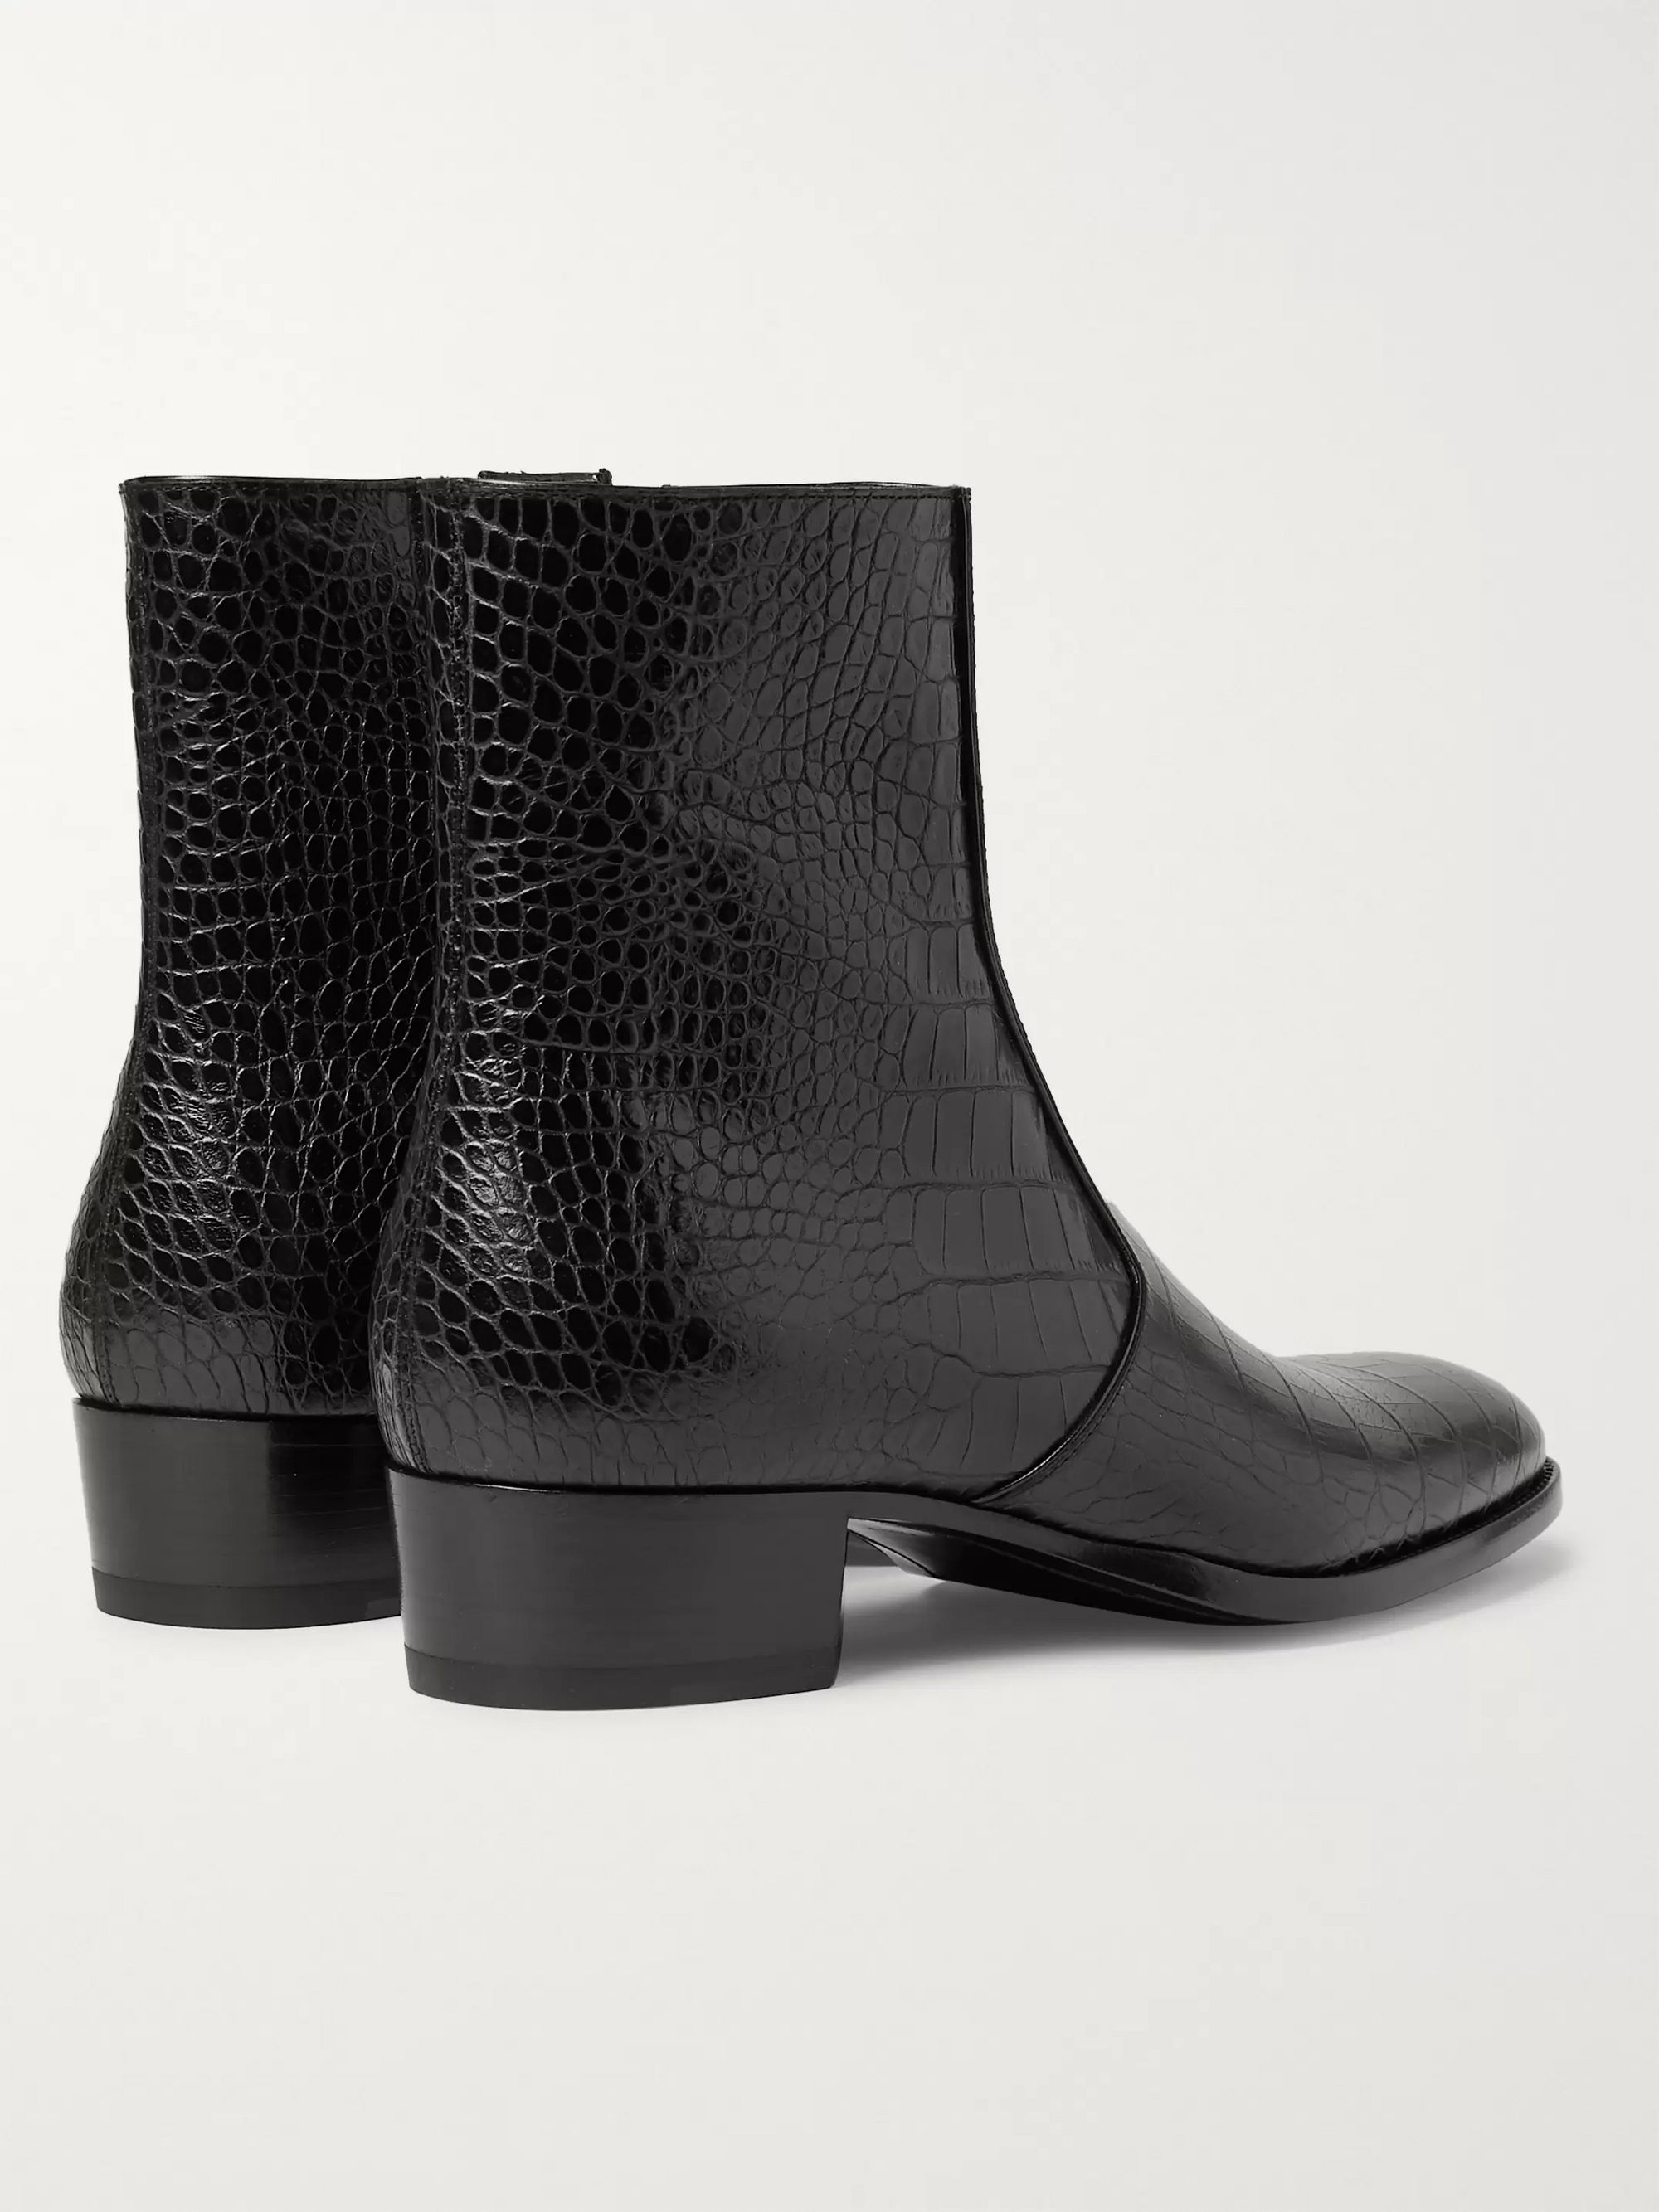 SAINT LAURENT Wyatt Croc-Effect Leather Boots